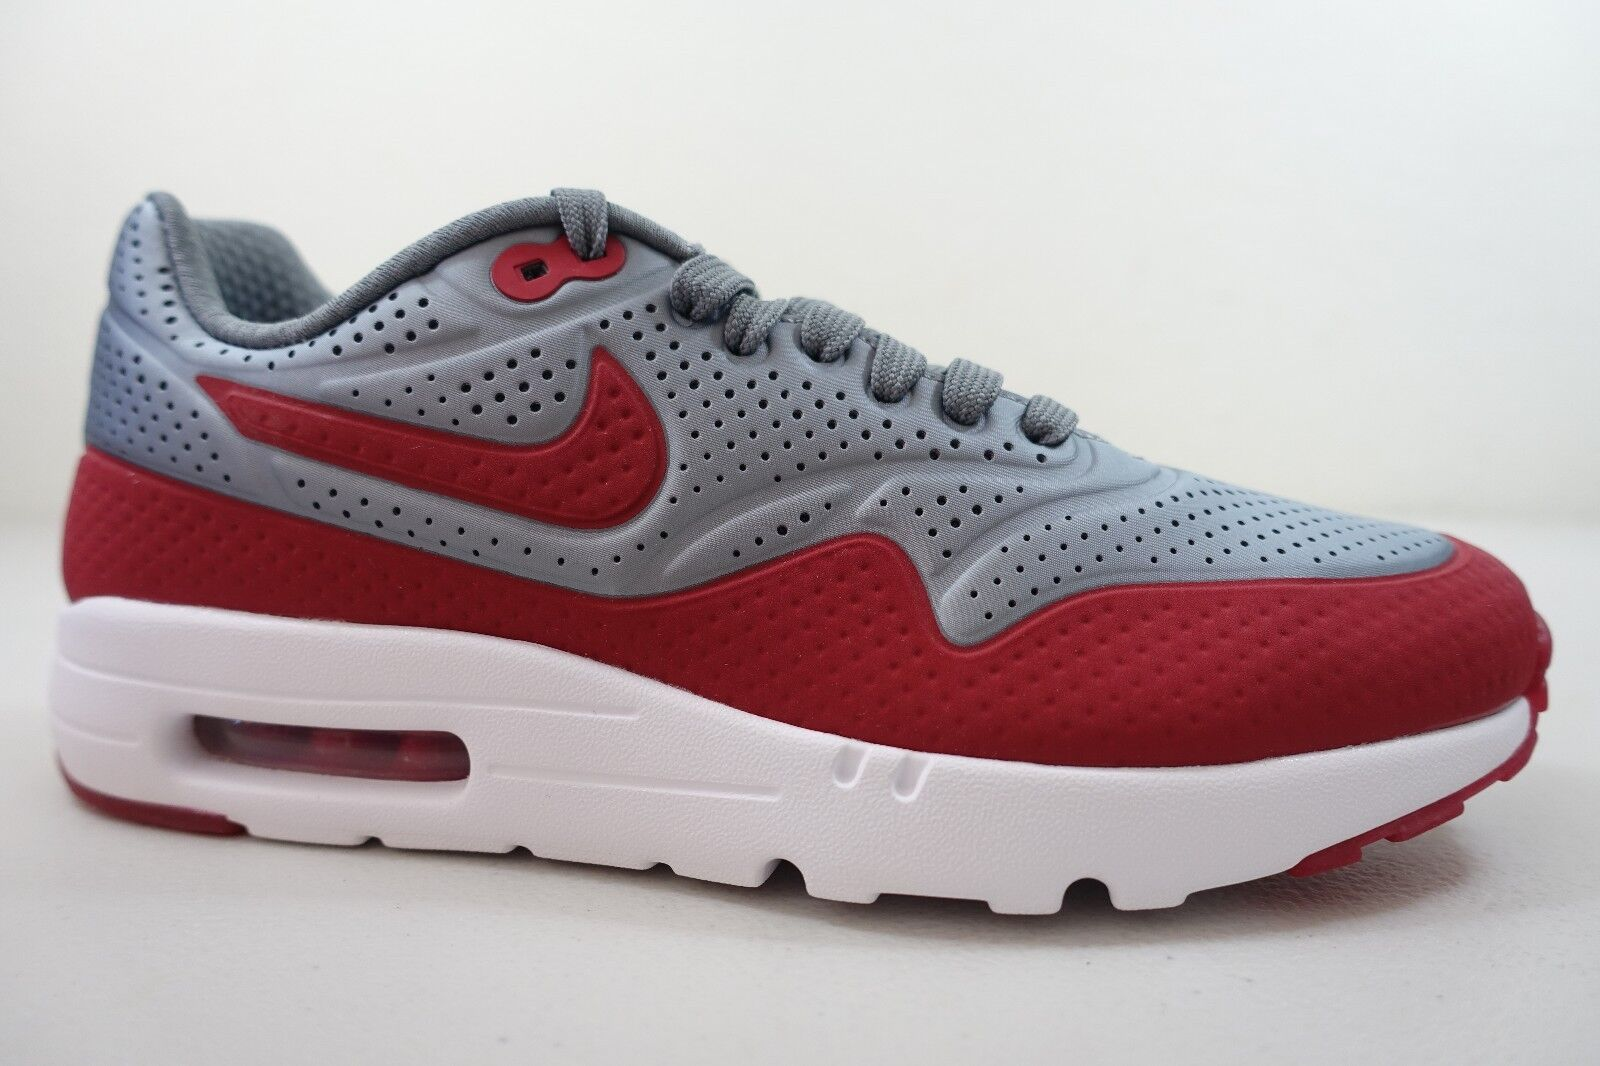 new concept 32649 0dfbc MEN S NIKE AIR MAX 1 ULTRA MOIRE SHOES SIZE 7 7 7 grey red white 705297